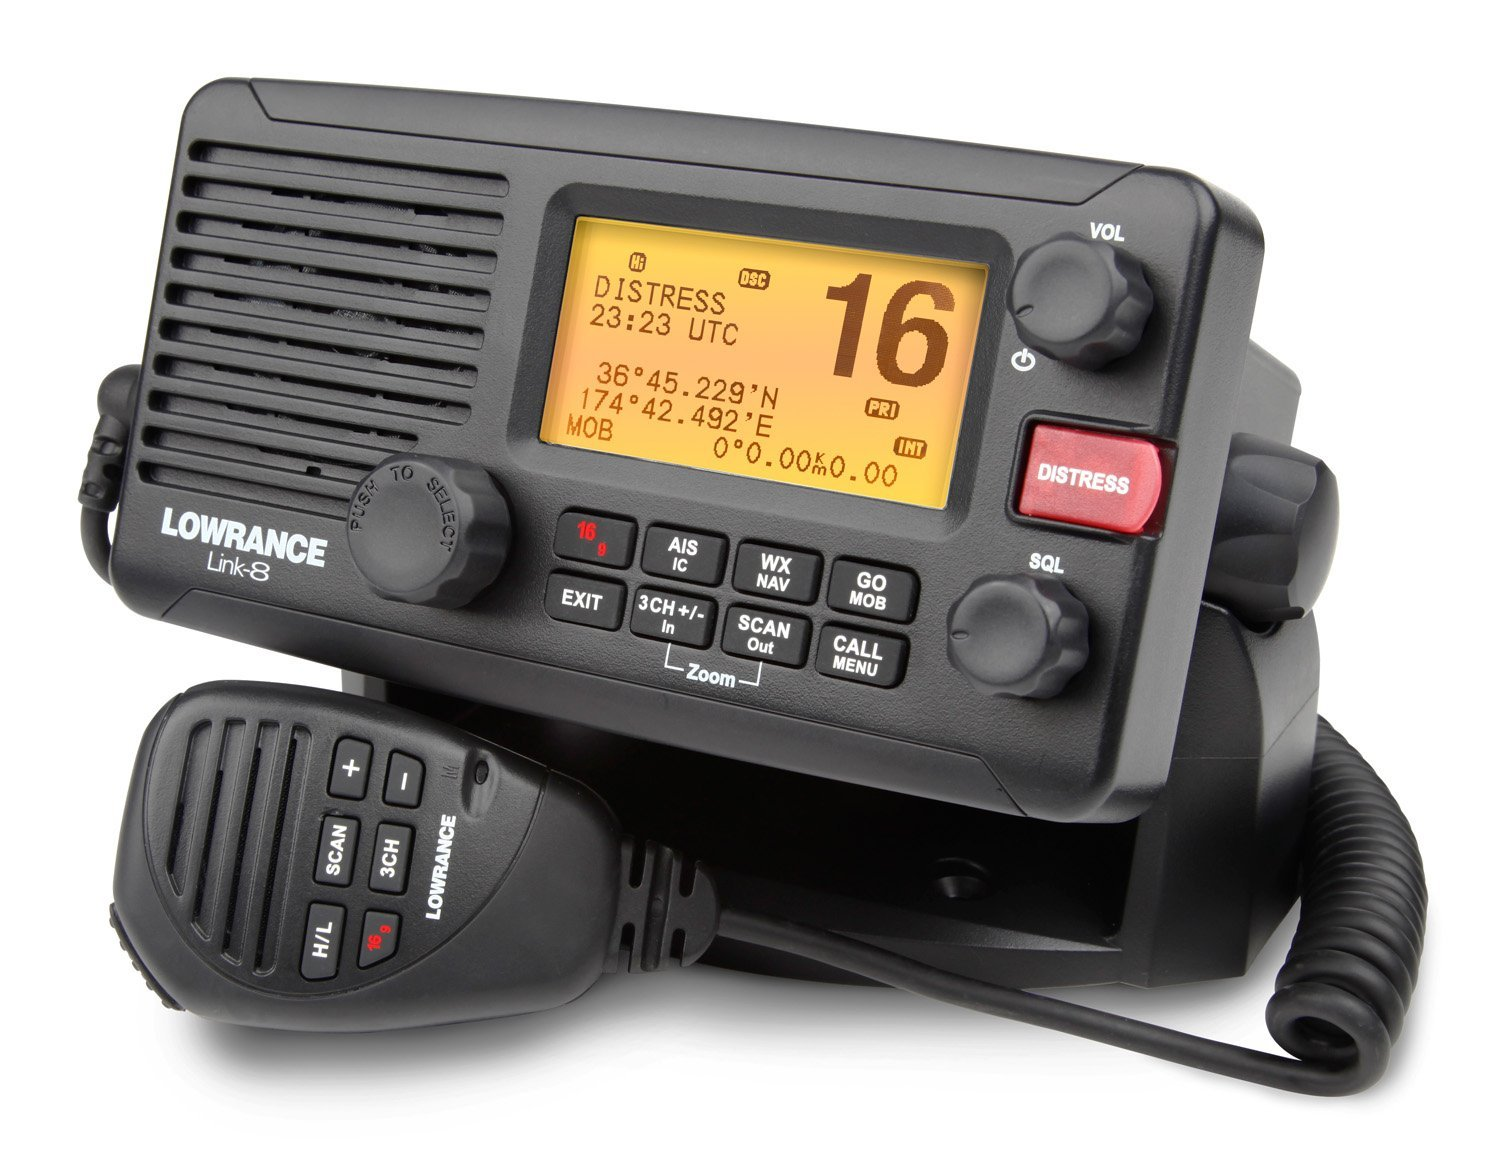 Lowrance Link-8